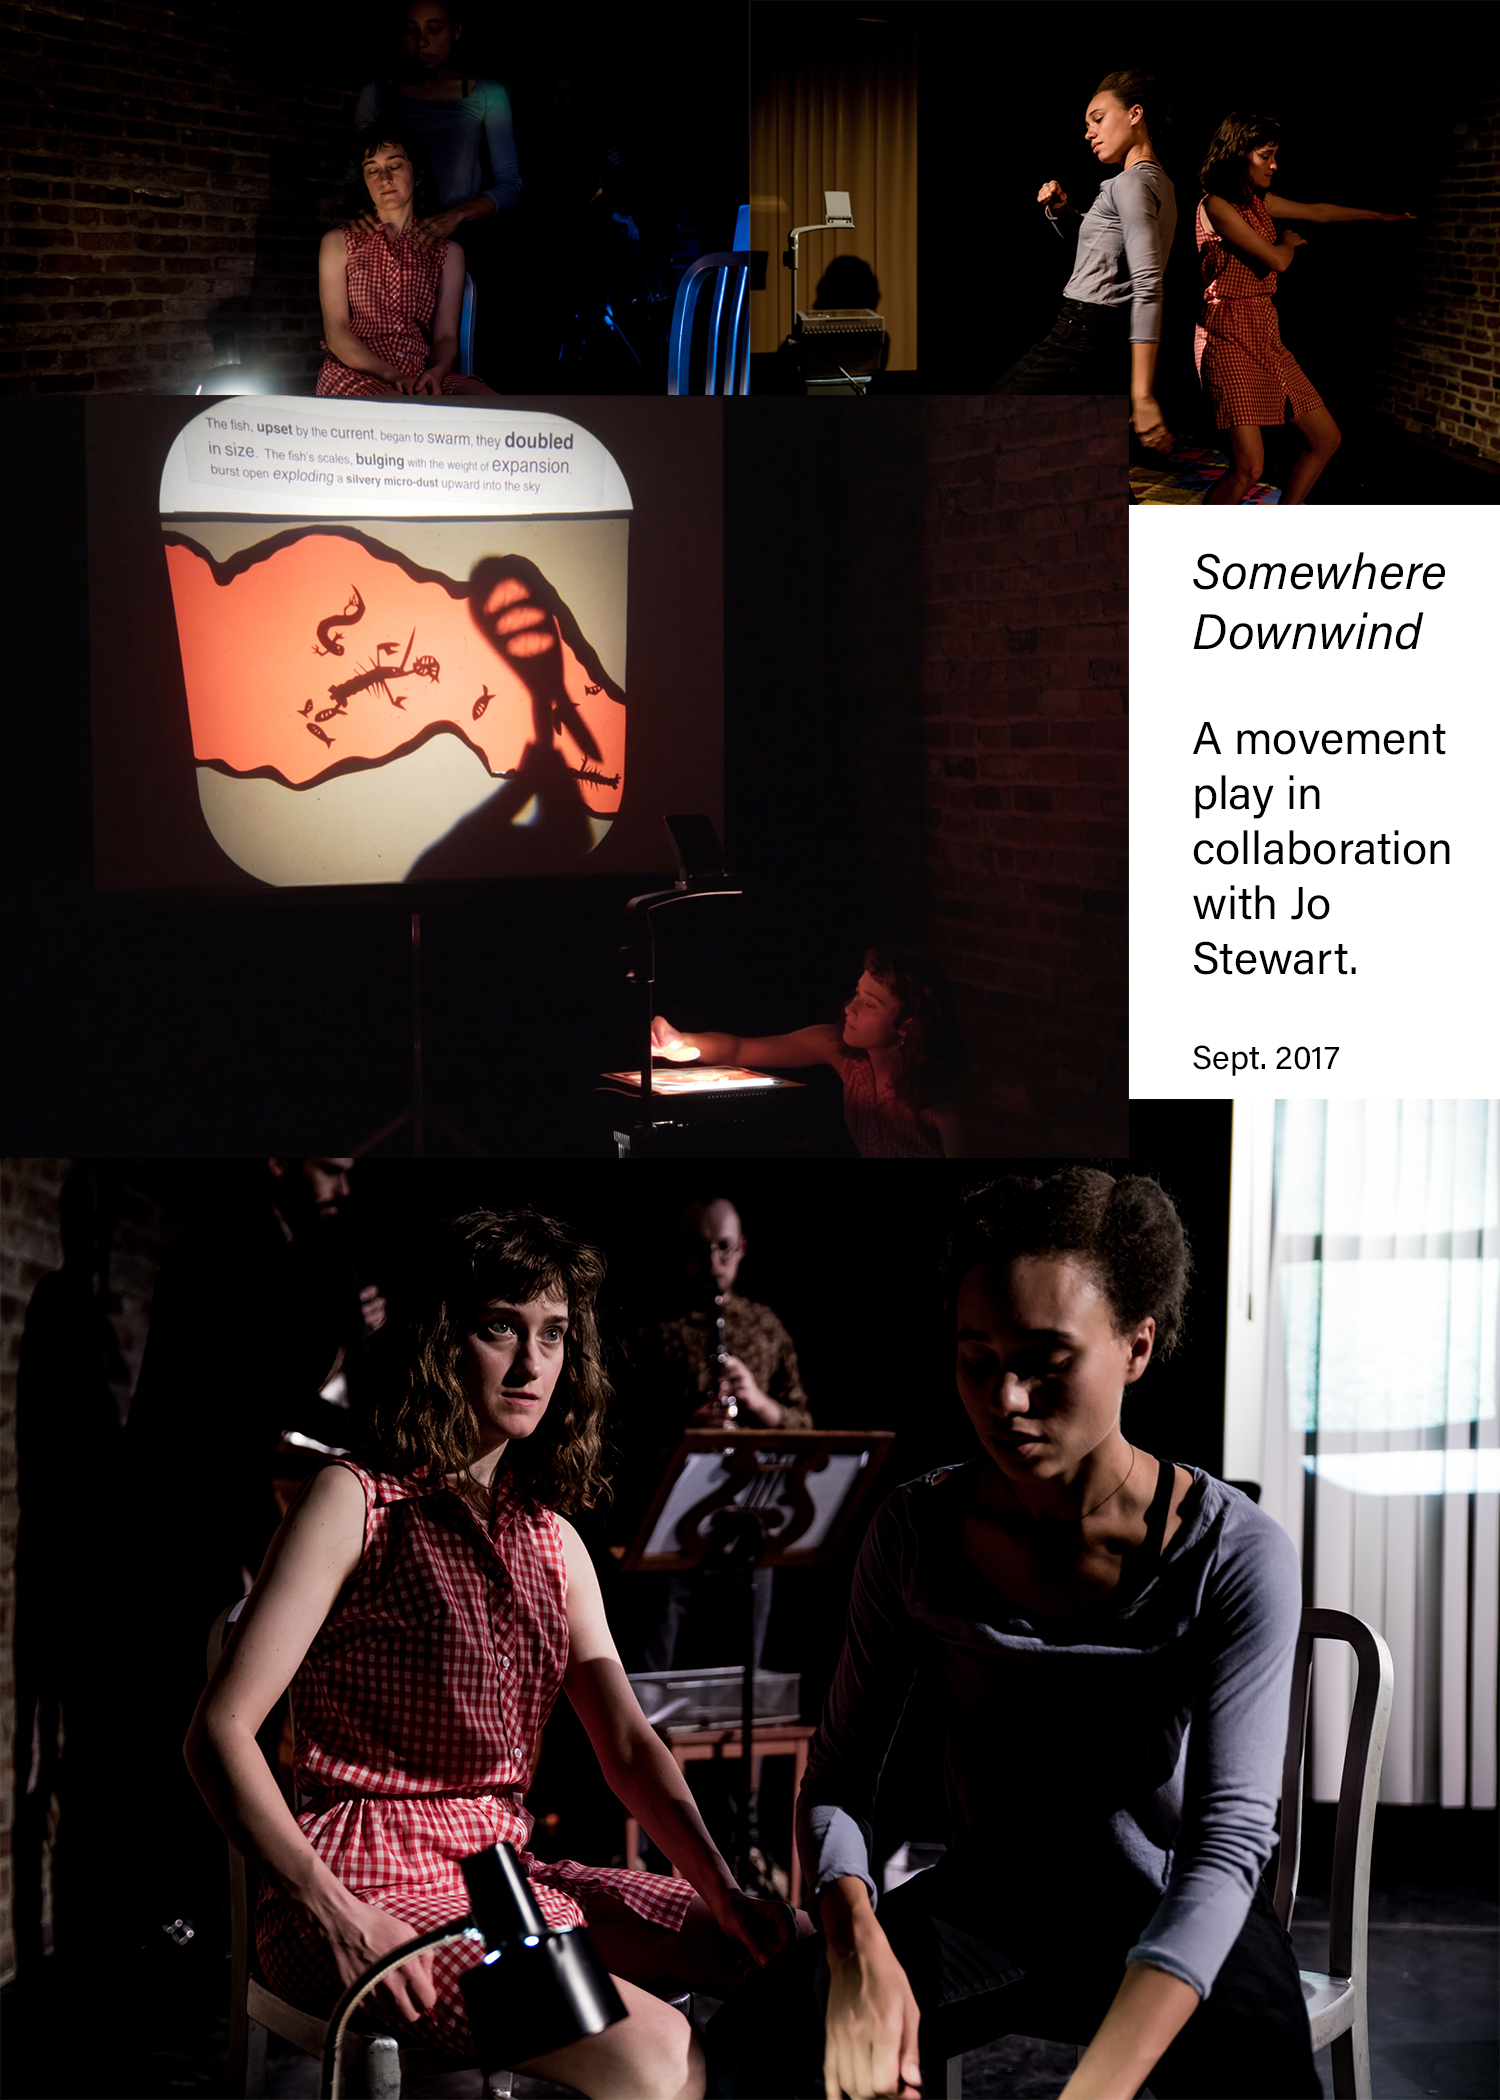 """Somewhere Downwind is a collaboration with Jo Stewart. It is a movement, performance piece that was performed at The Brick in Williamsburg, Brooklyn in September 2017. Somewhere Downwind consists of an improvisational score in 4 parts and it aims to construct a visual diary of sorts commenting on the nature of """"dwelling."""" In it, we used weather phenomenon, patterns, and forecasts to measure our sense of permanence and test the vulnerabilities of our chosen shelters—whether those shelters be relationships, houses, or communities.We move between dance, mime, and puppetry with live accompaniment by Aaron Rourk and Zack Nestel-Patt on the clarinet and double bass."""